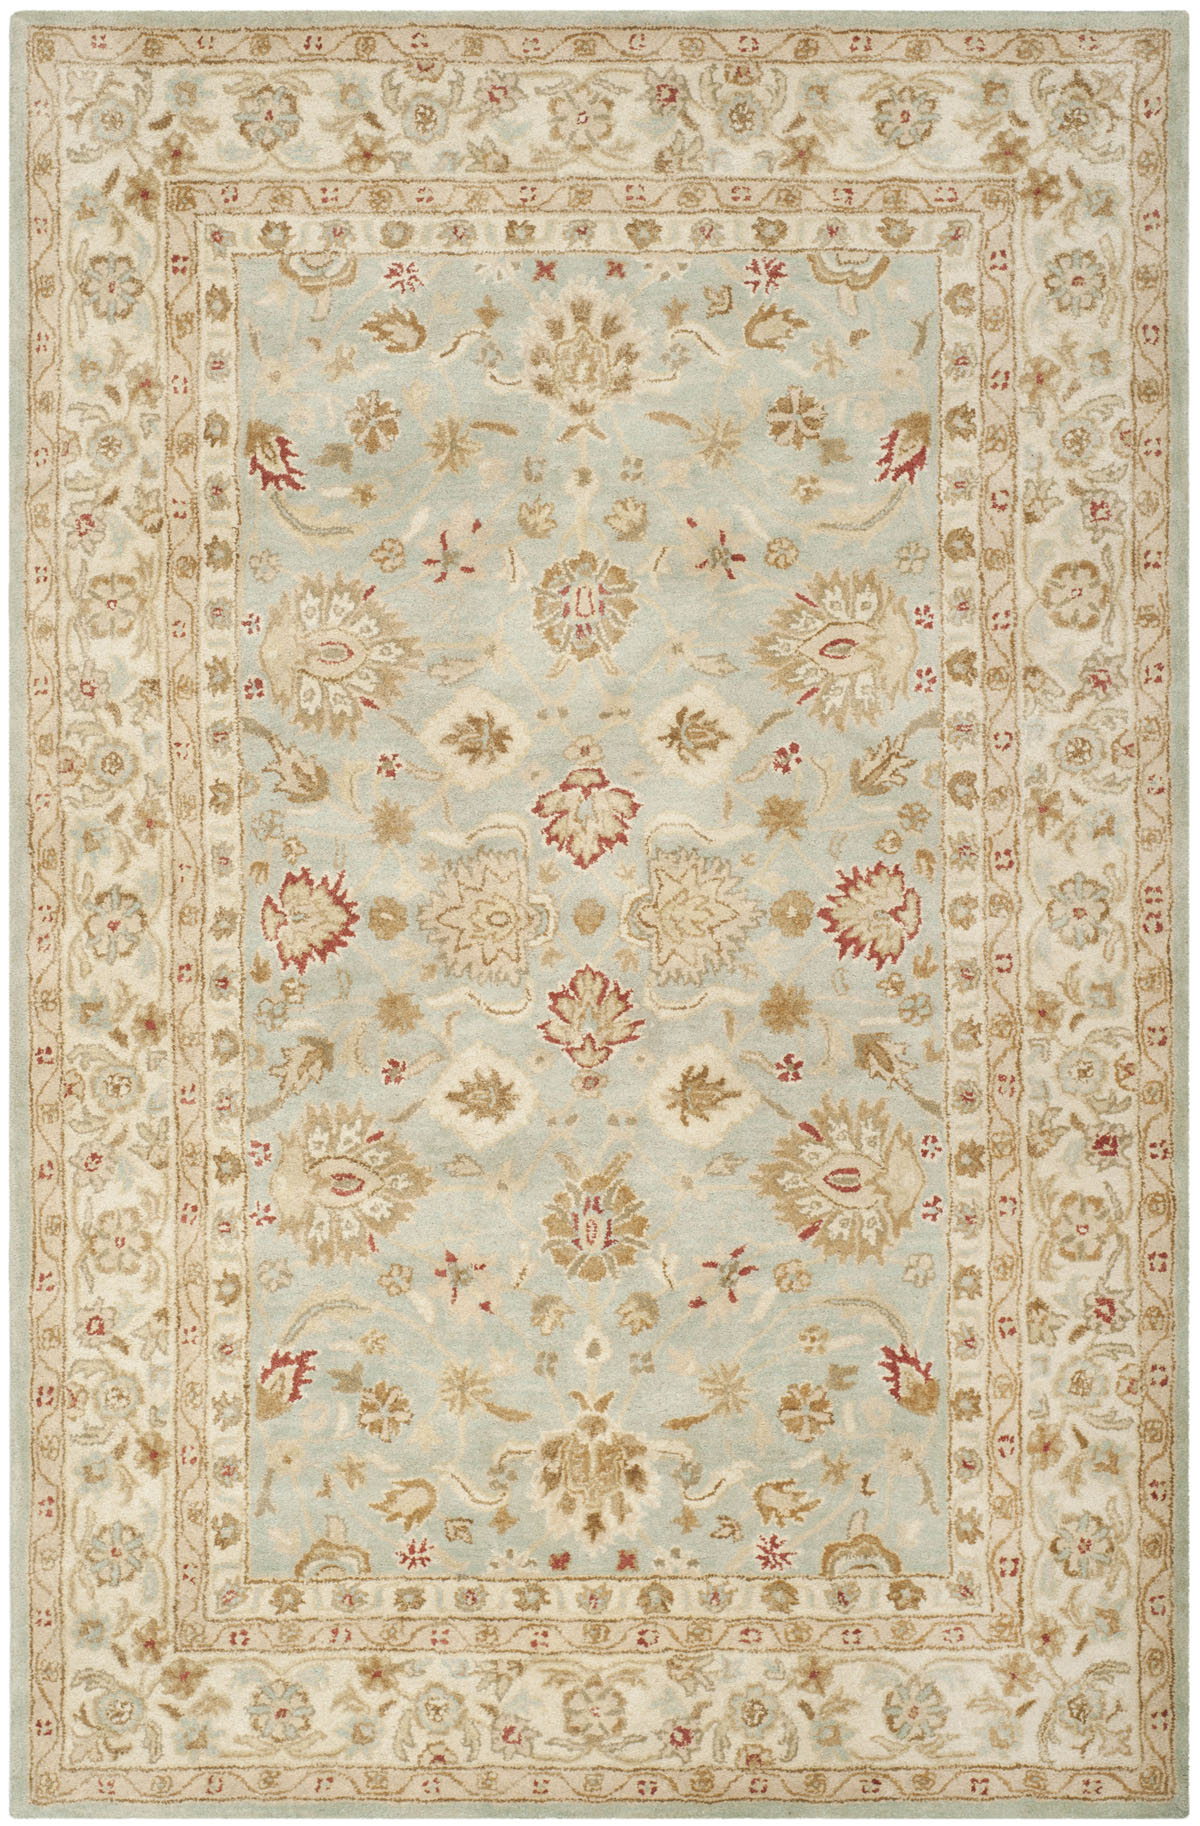 Safavieh Antiquity At822a Grey Blue And Beige Area Rug